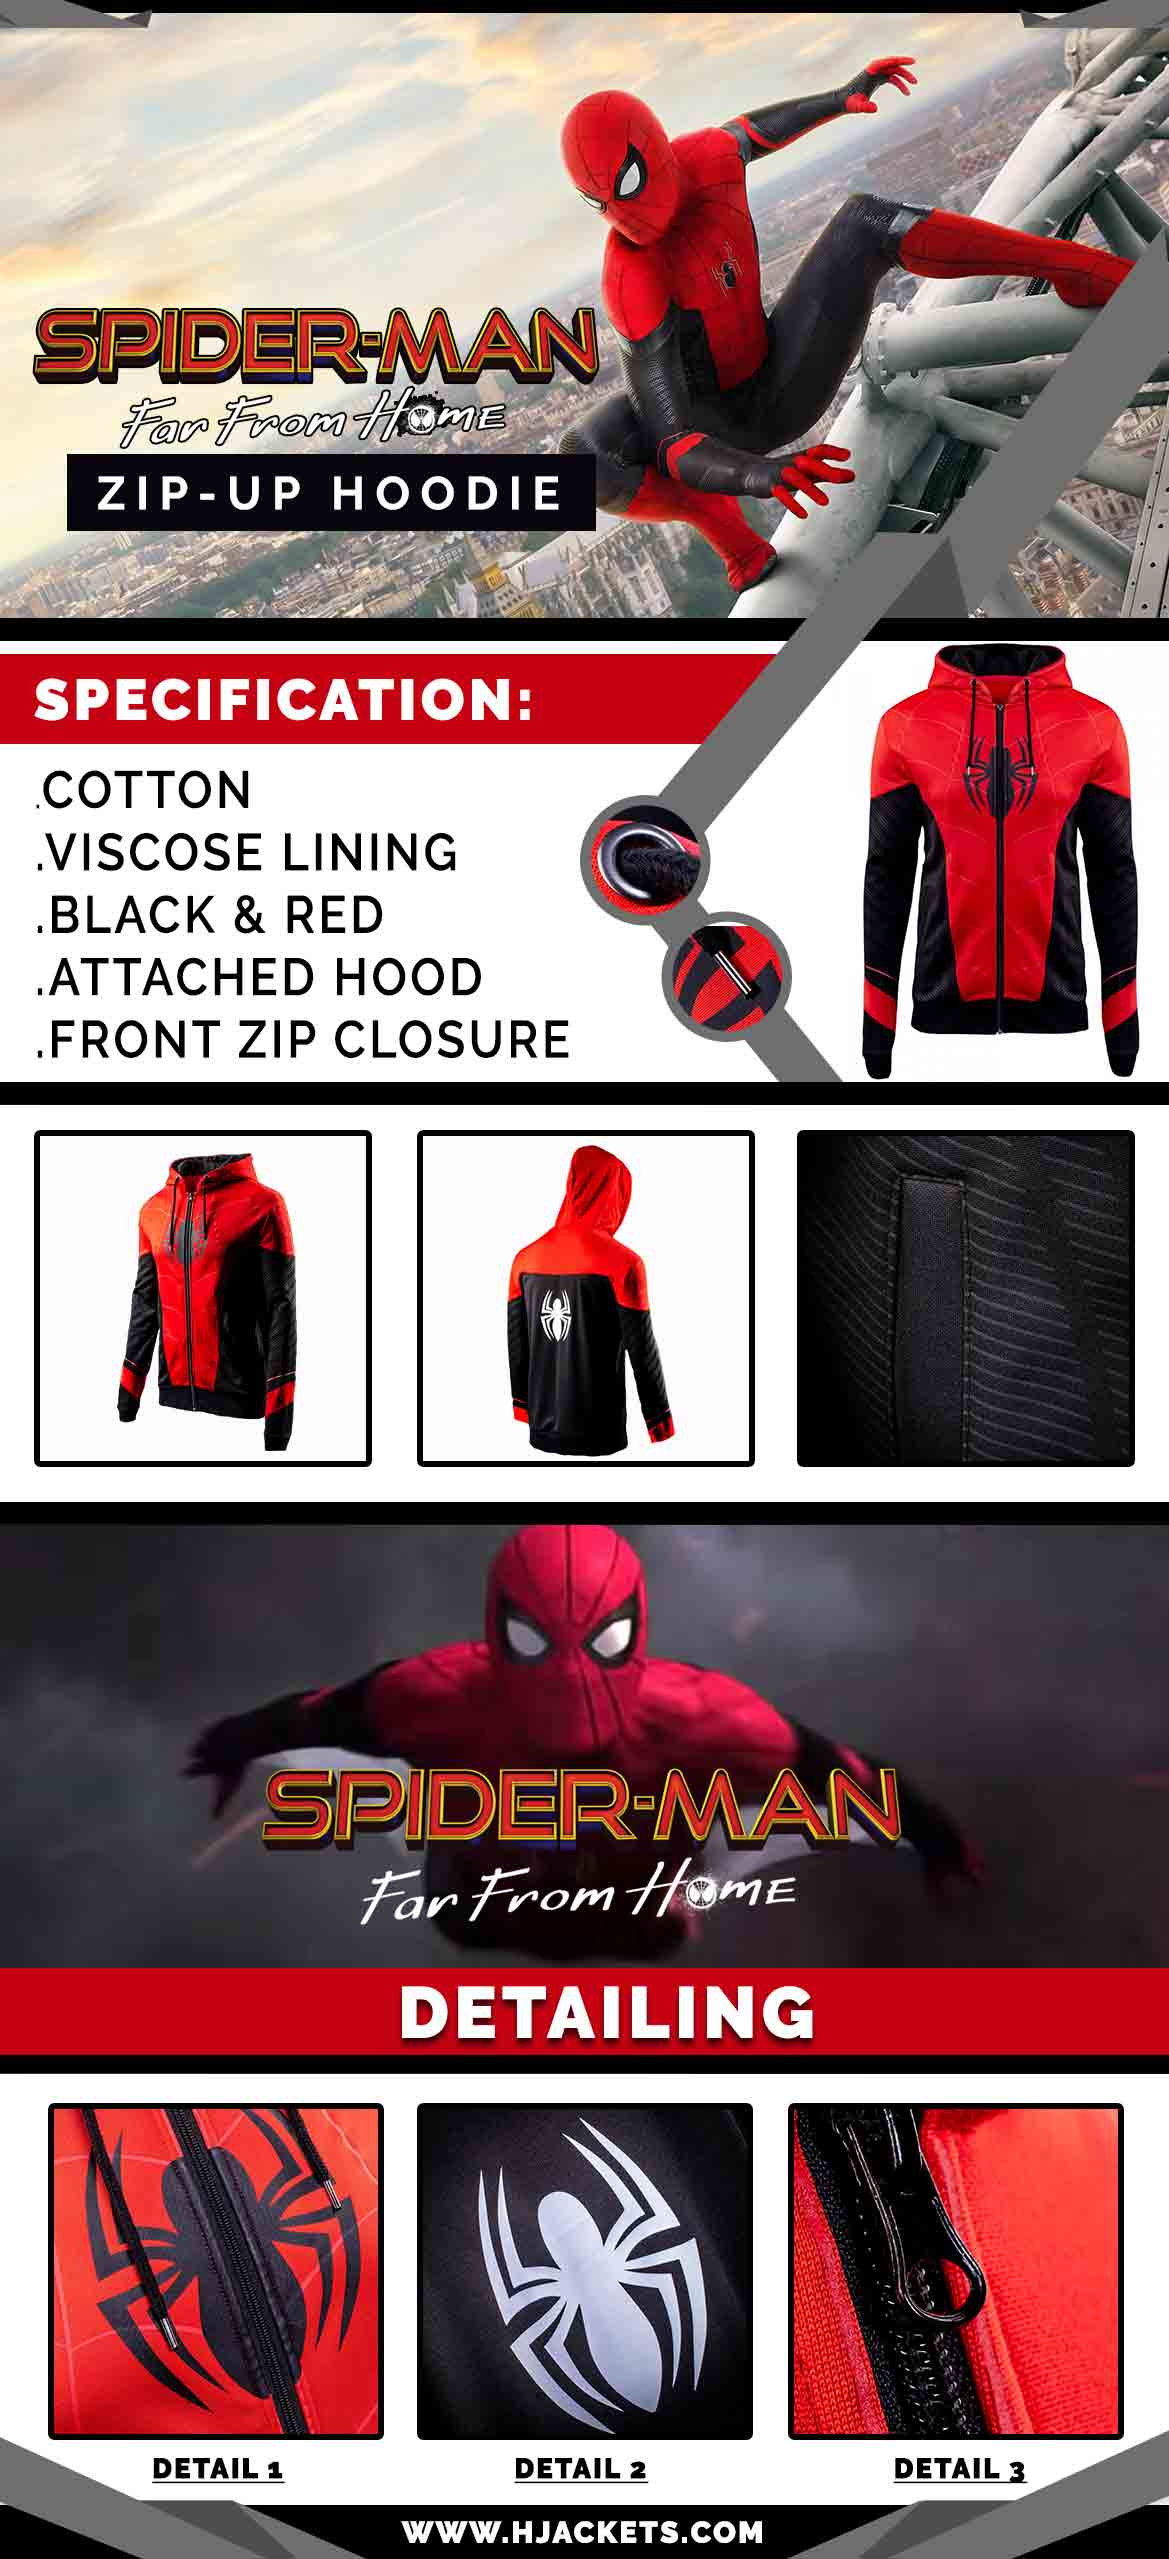 Spiderman Far From Home Hoodie Infographic